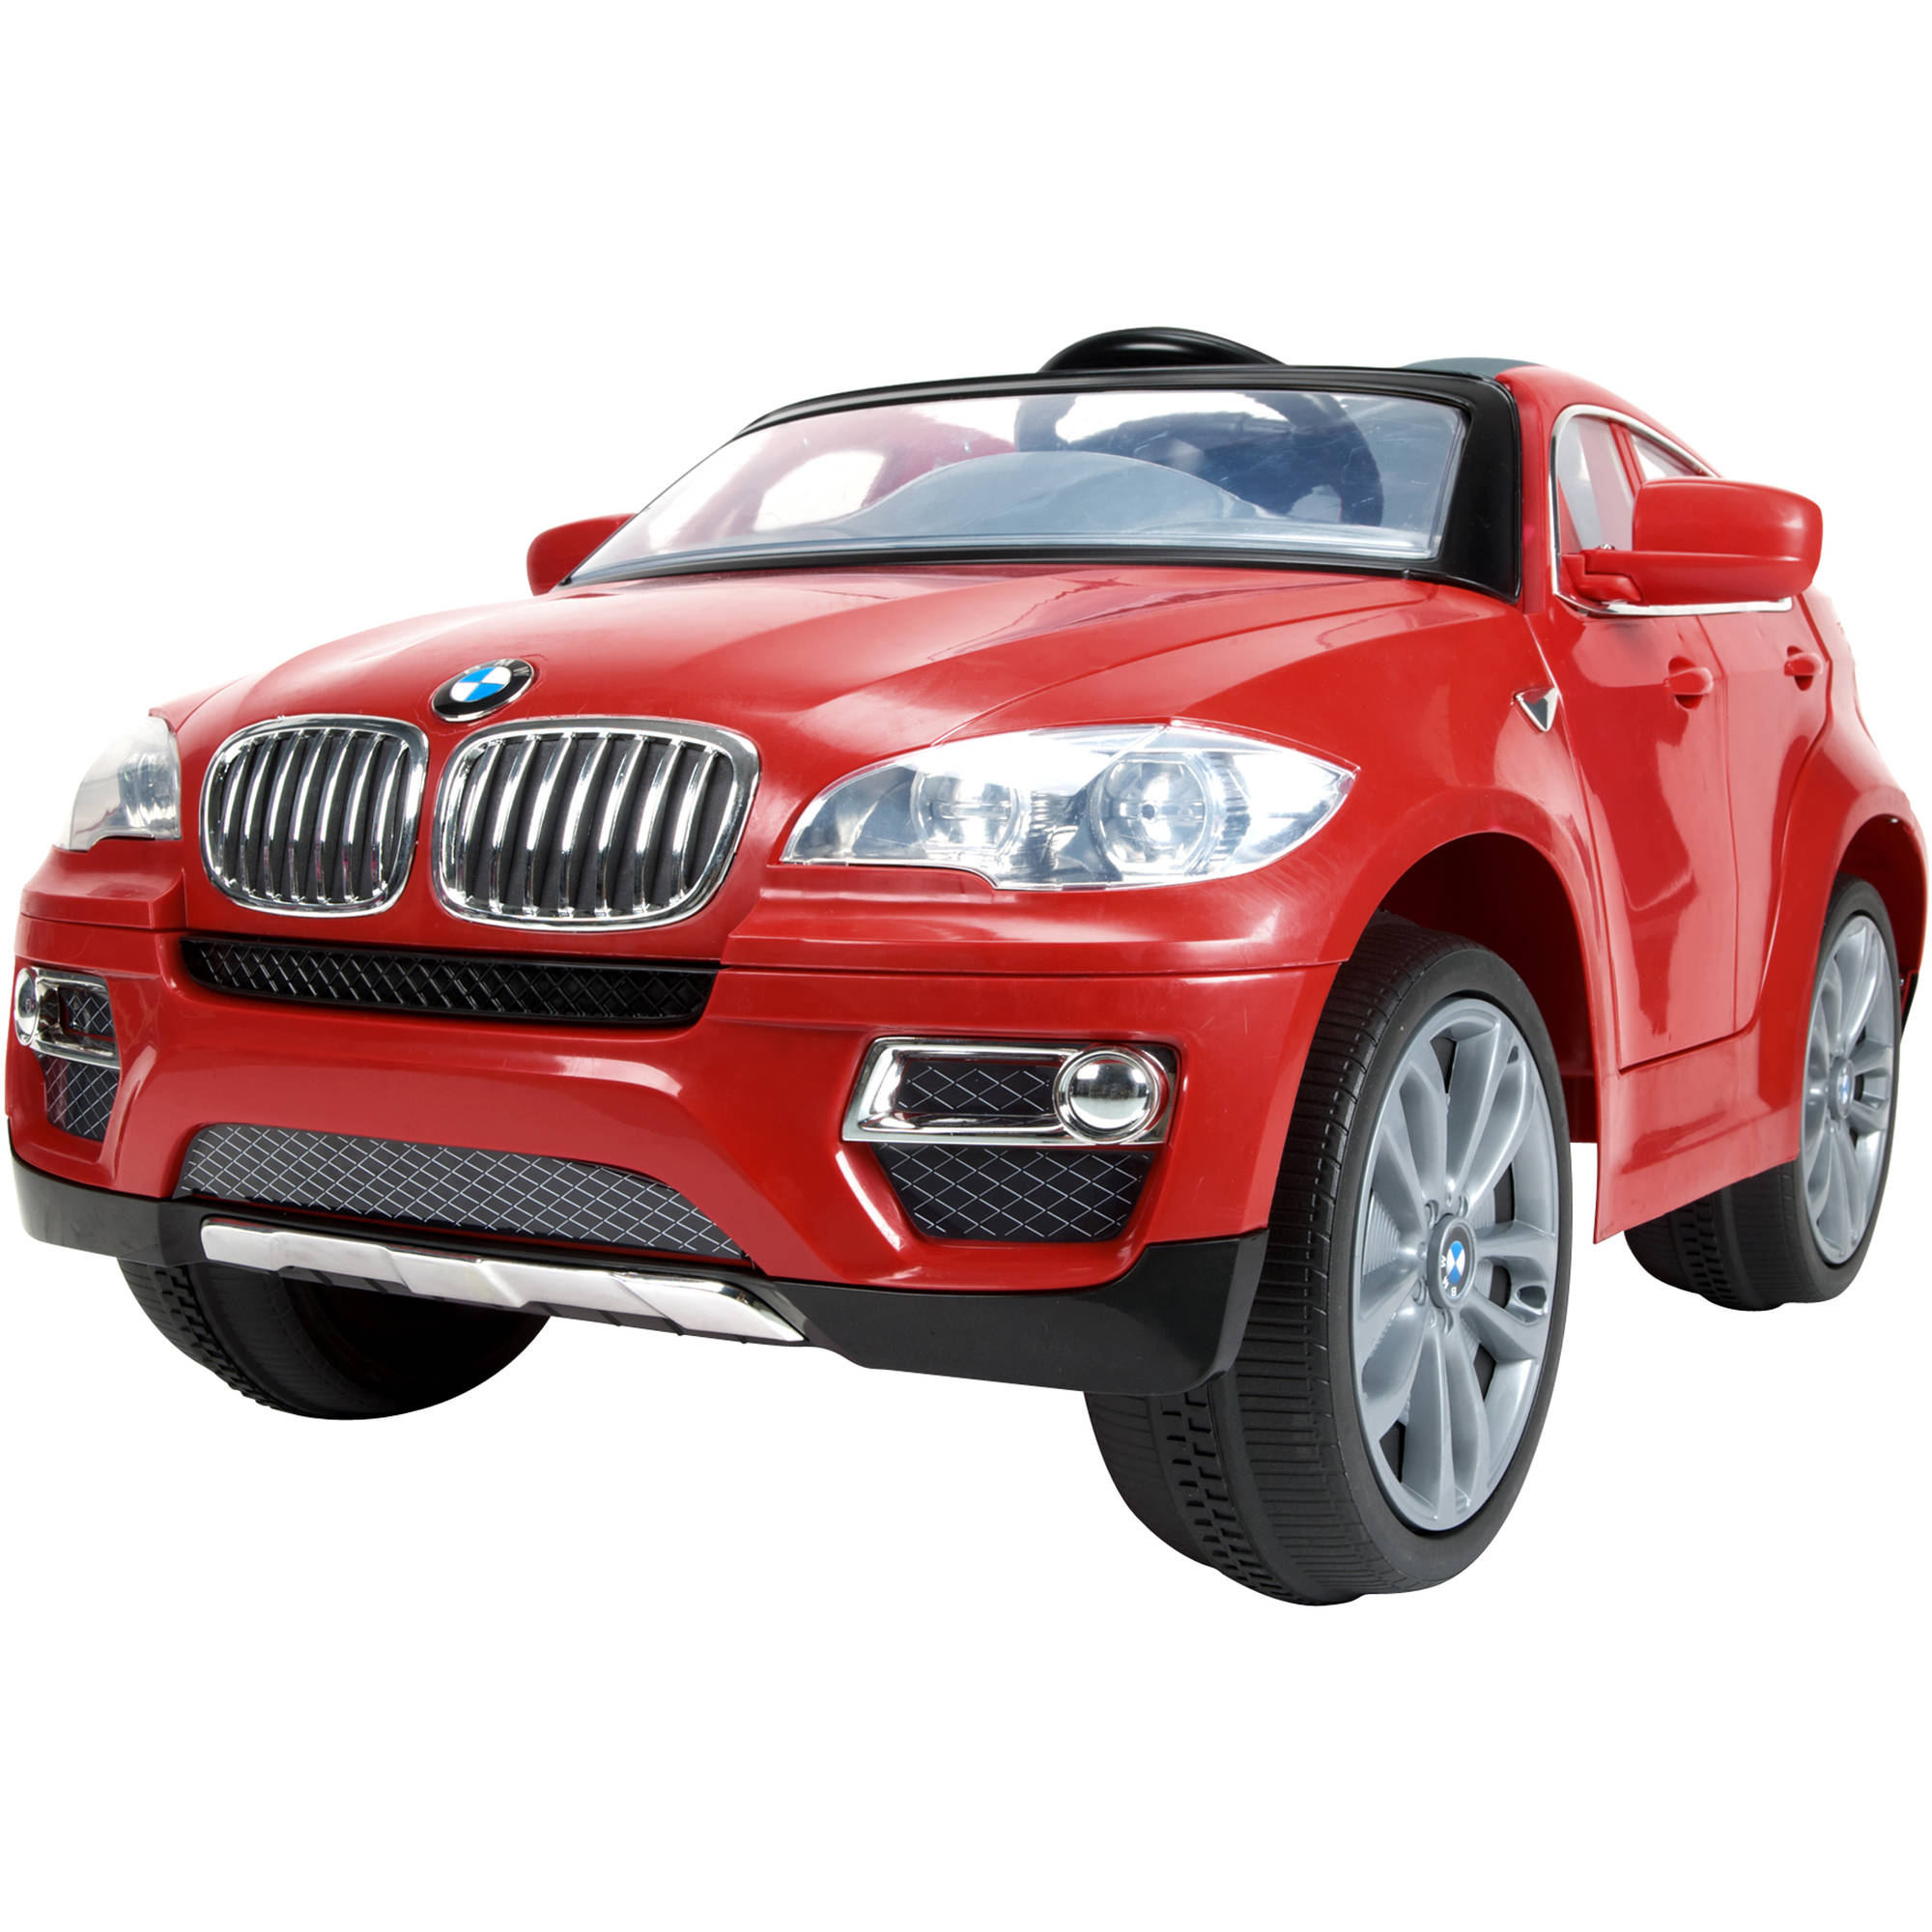 Battery Powered Cars Luxury Bmw X6 6 Volt Battery Powered Ride On toy Car by Huffy Walmart